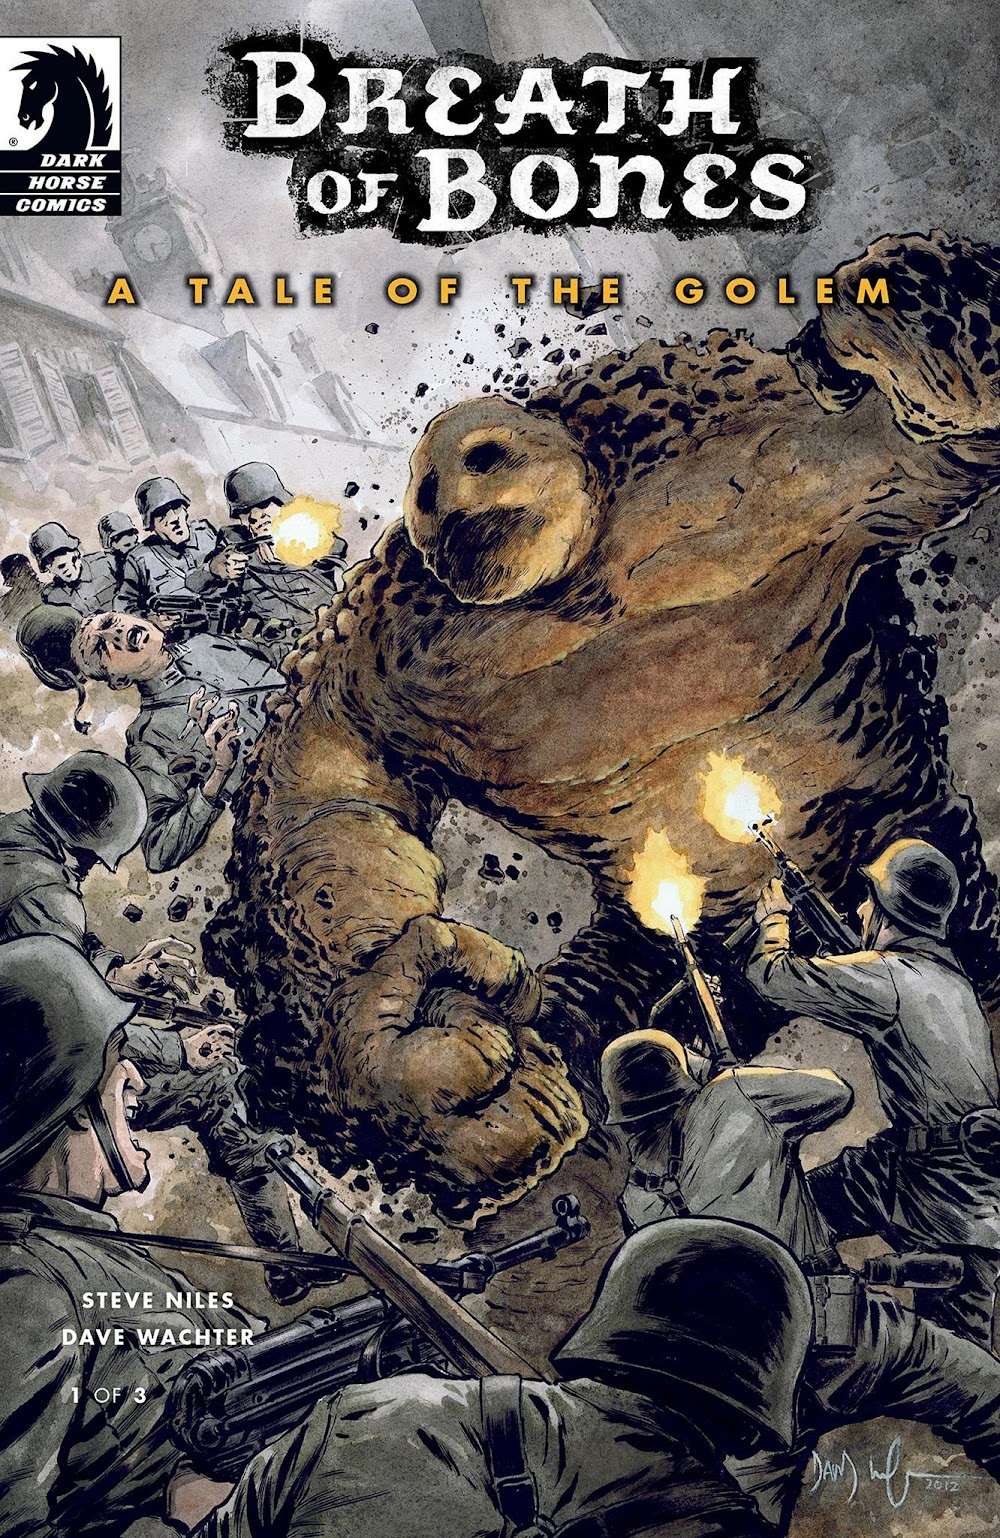 Breath of Bones - A Tale of the Golem (2013) - complete